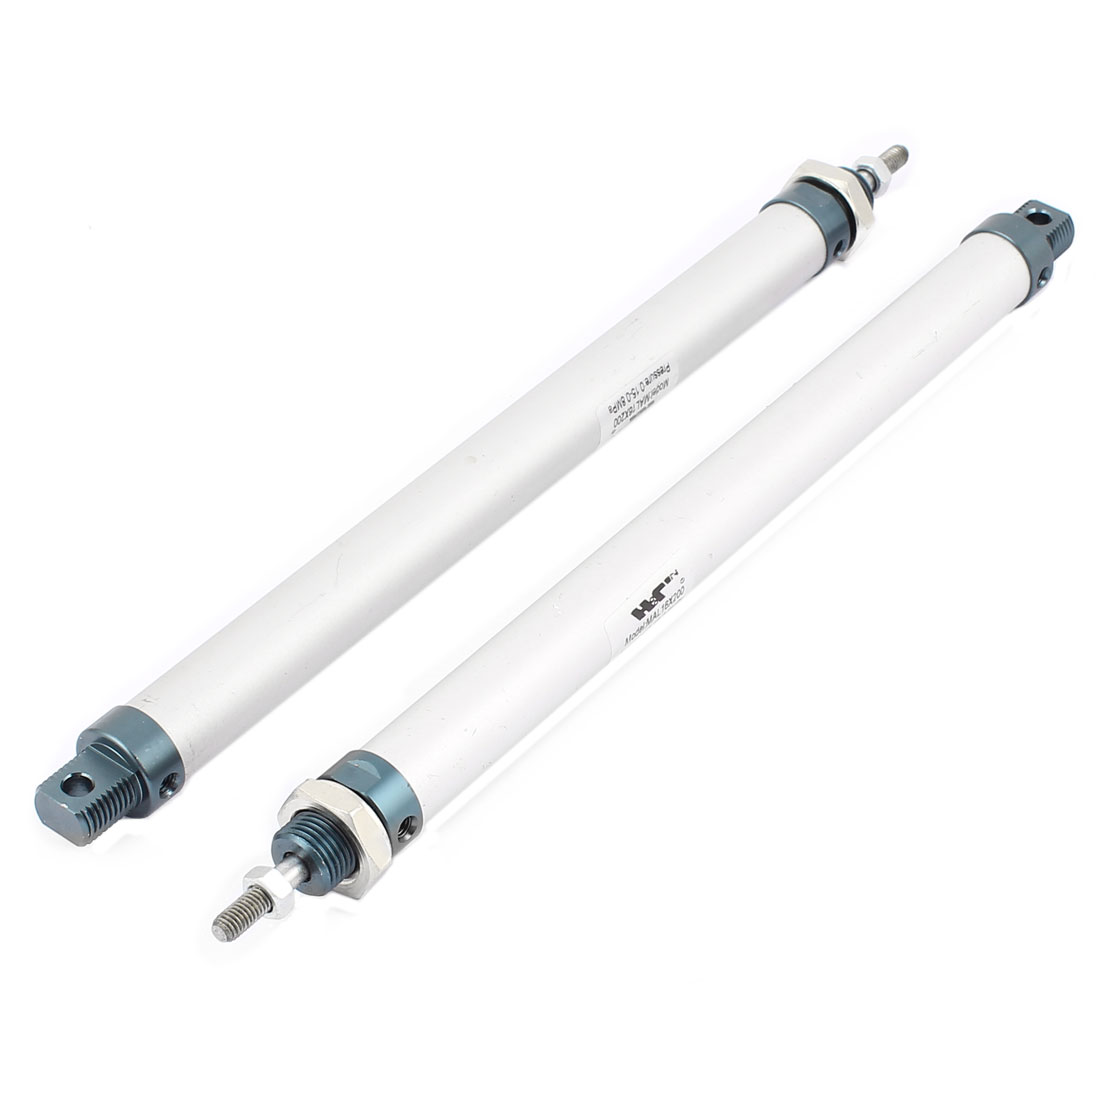 MAL16mm x 200mm Single Rod Double Action Stainless Steel Pneumatic Air Cylinder 2PCS